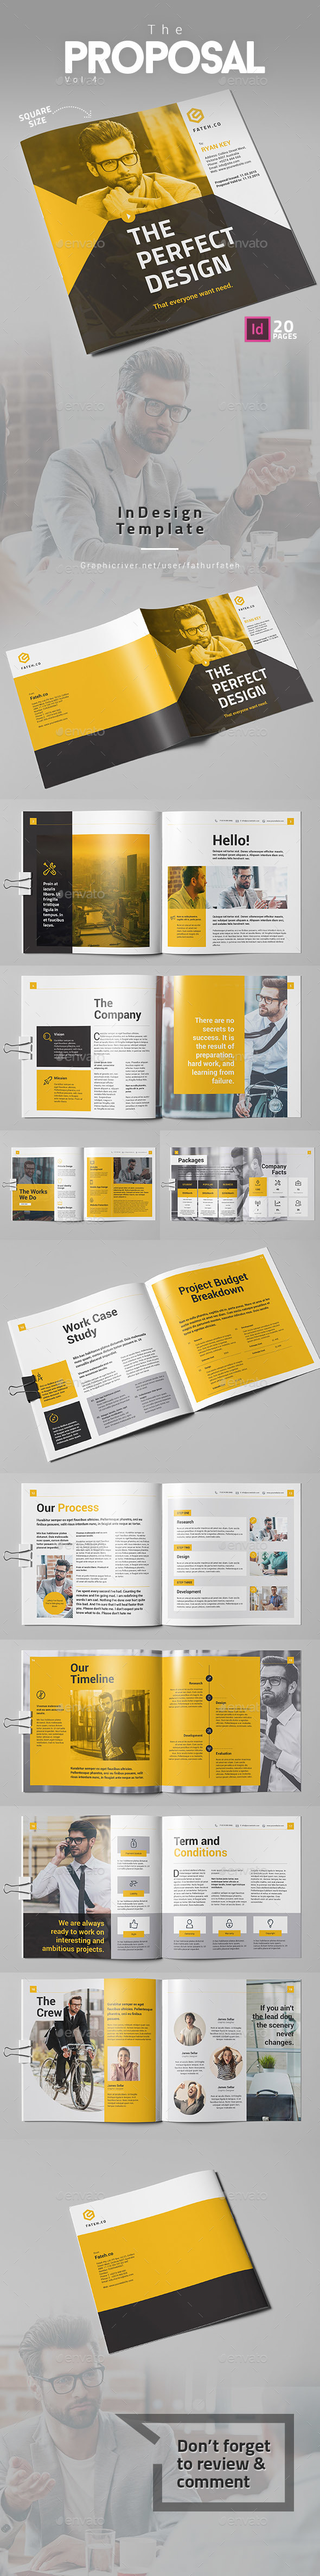 The Square Proposal Brochure Template InDesign INDD | Proposal ...